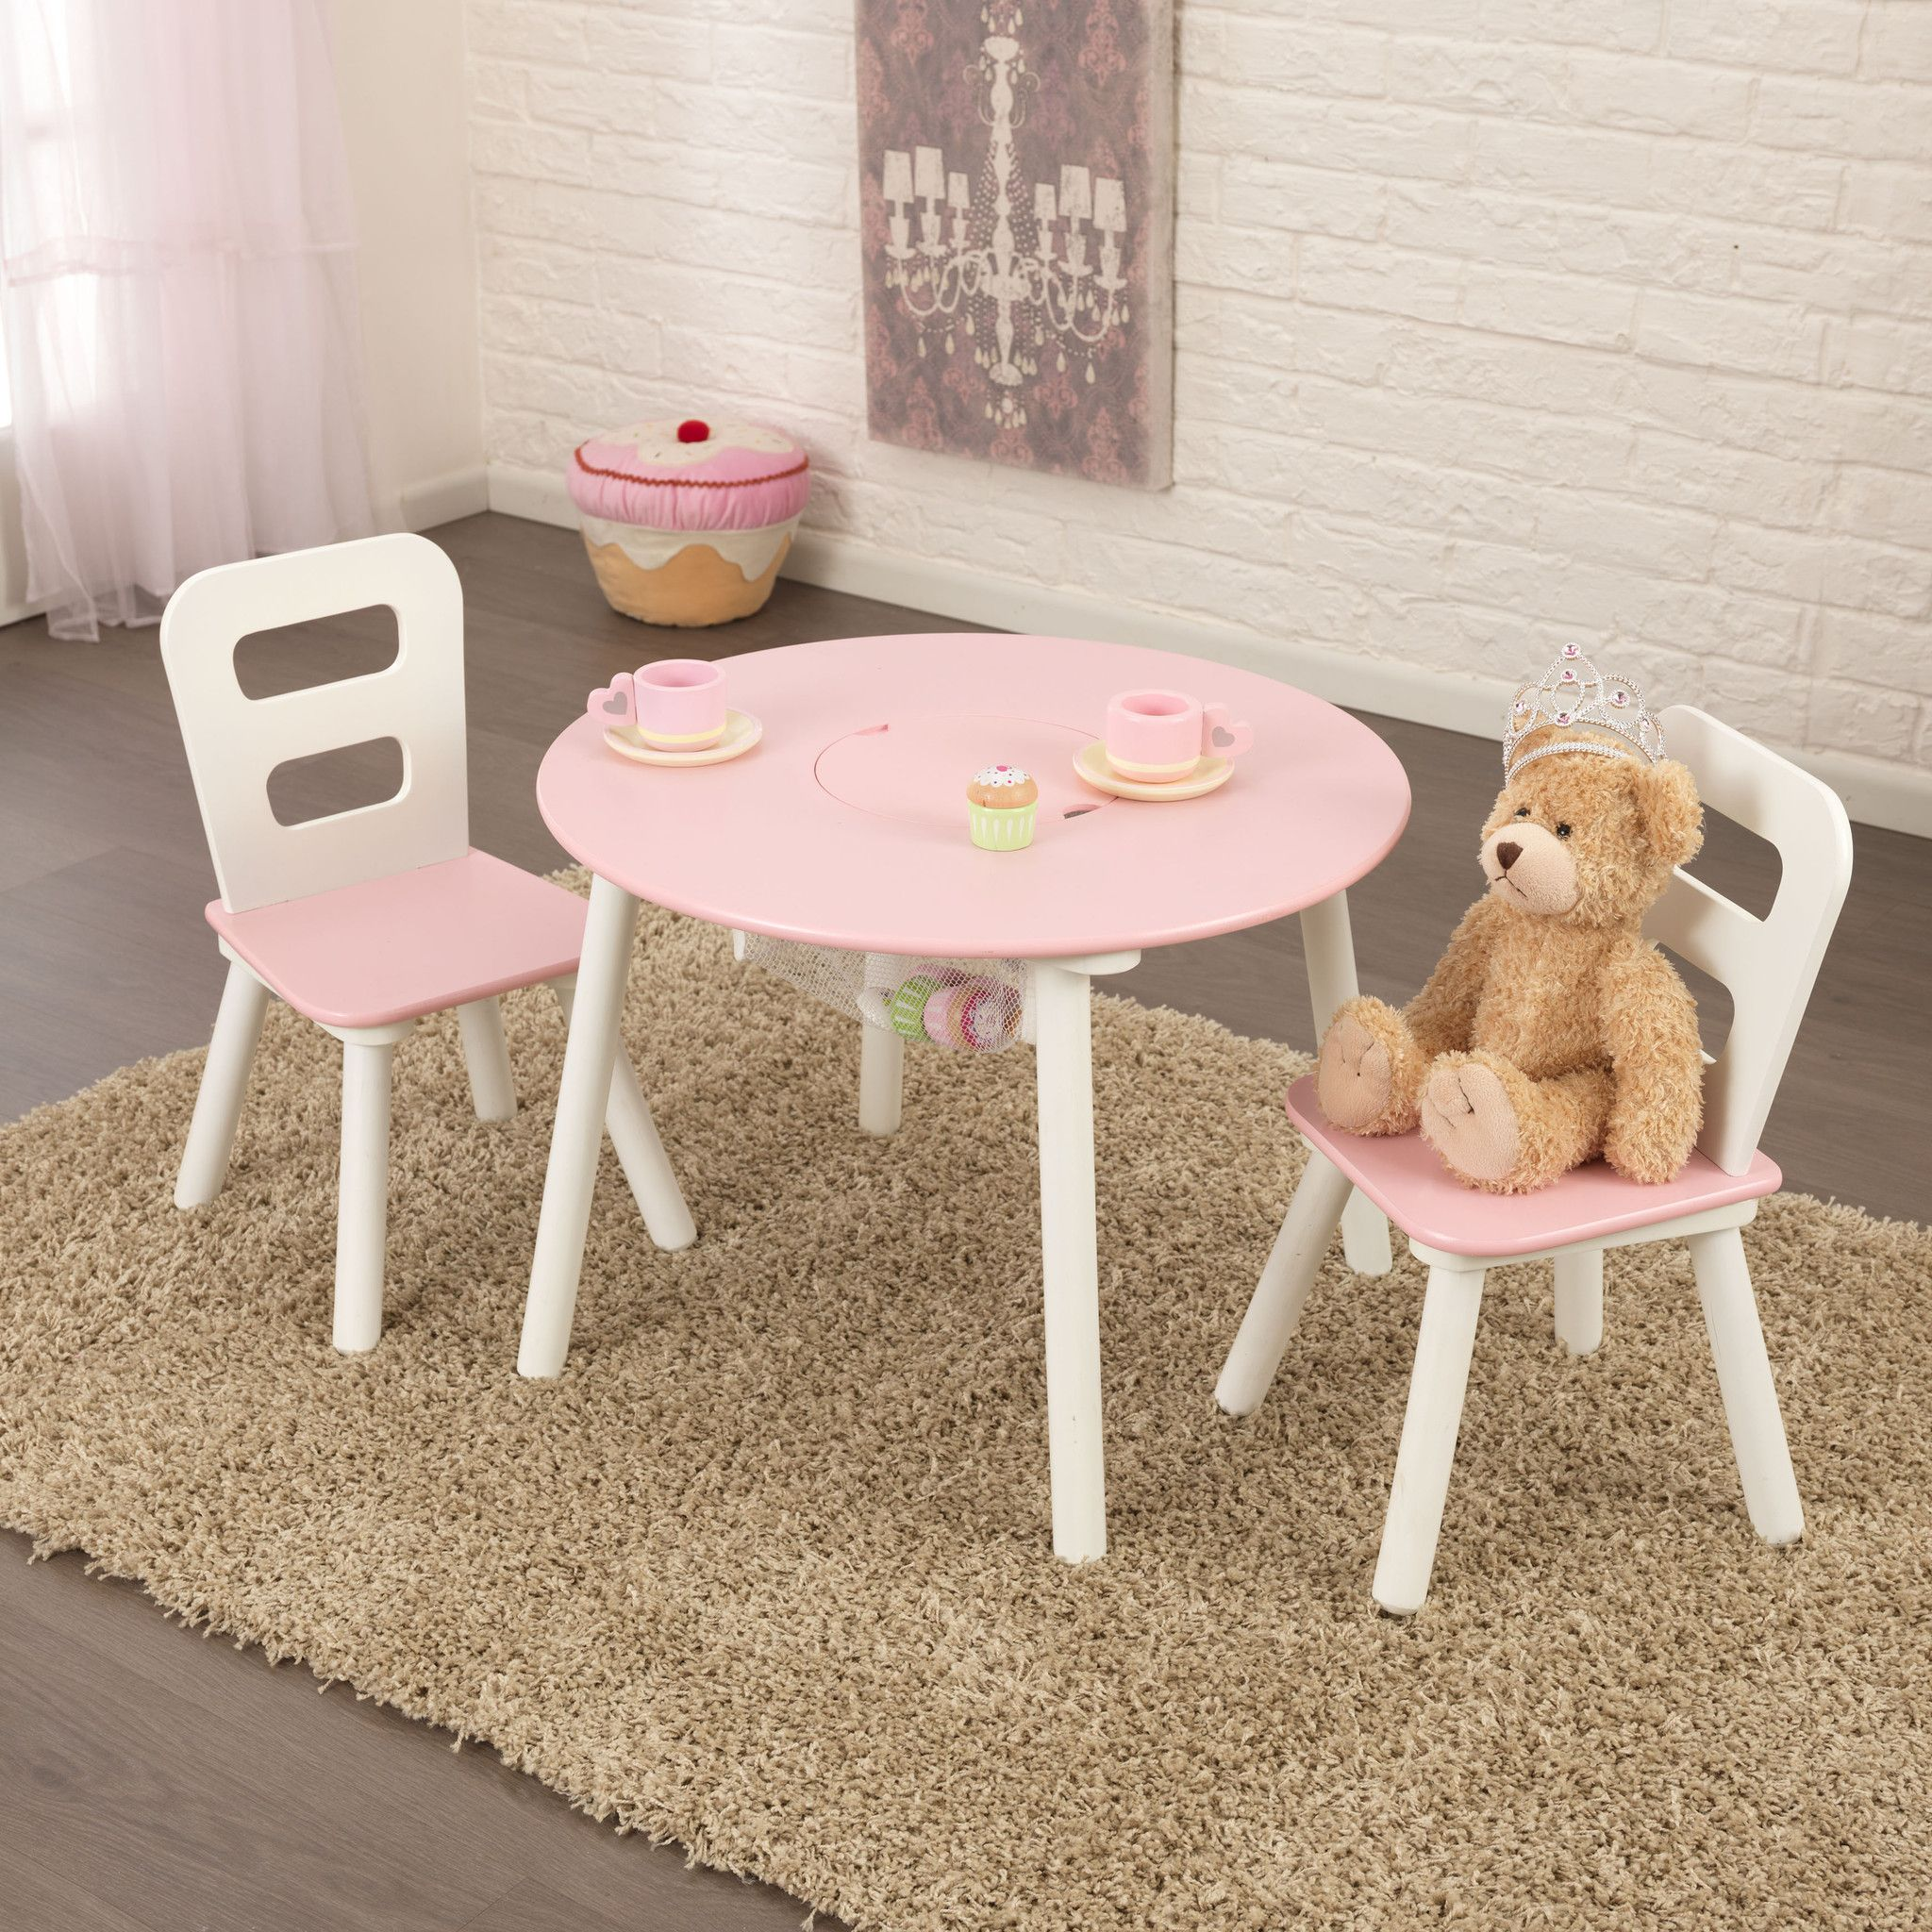 Kidkraft Round Storage Table Chair Set White Pink 26165